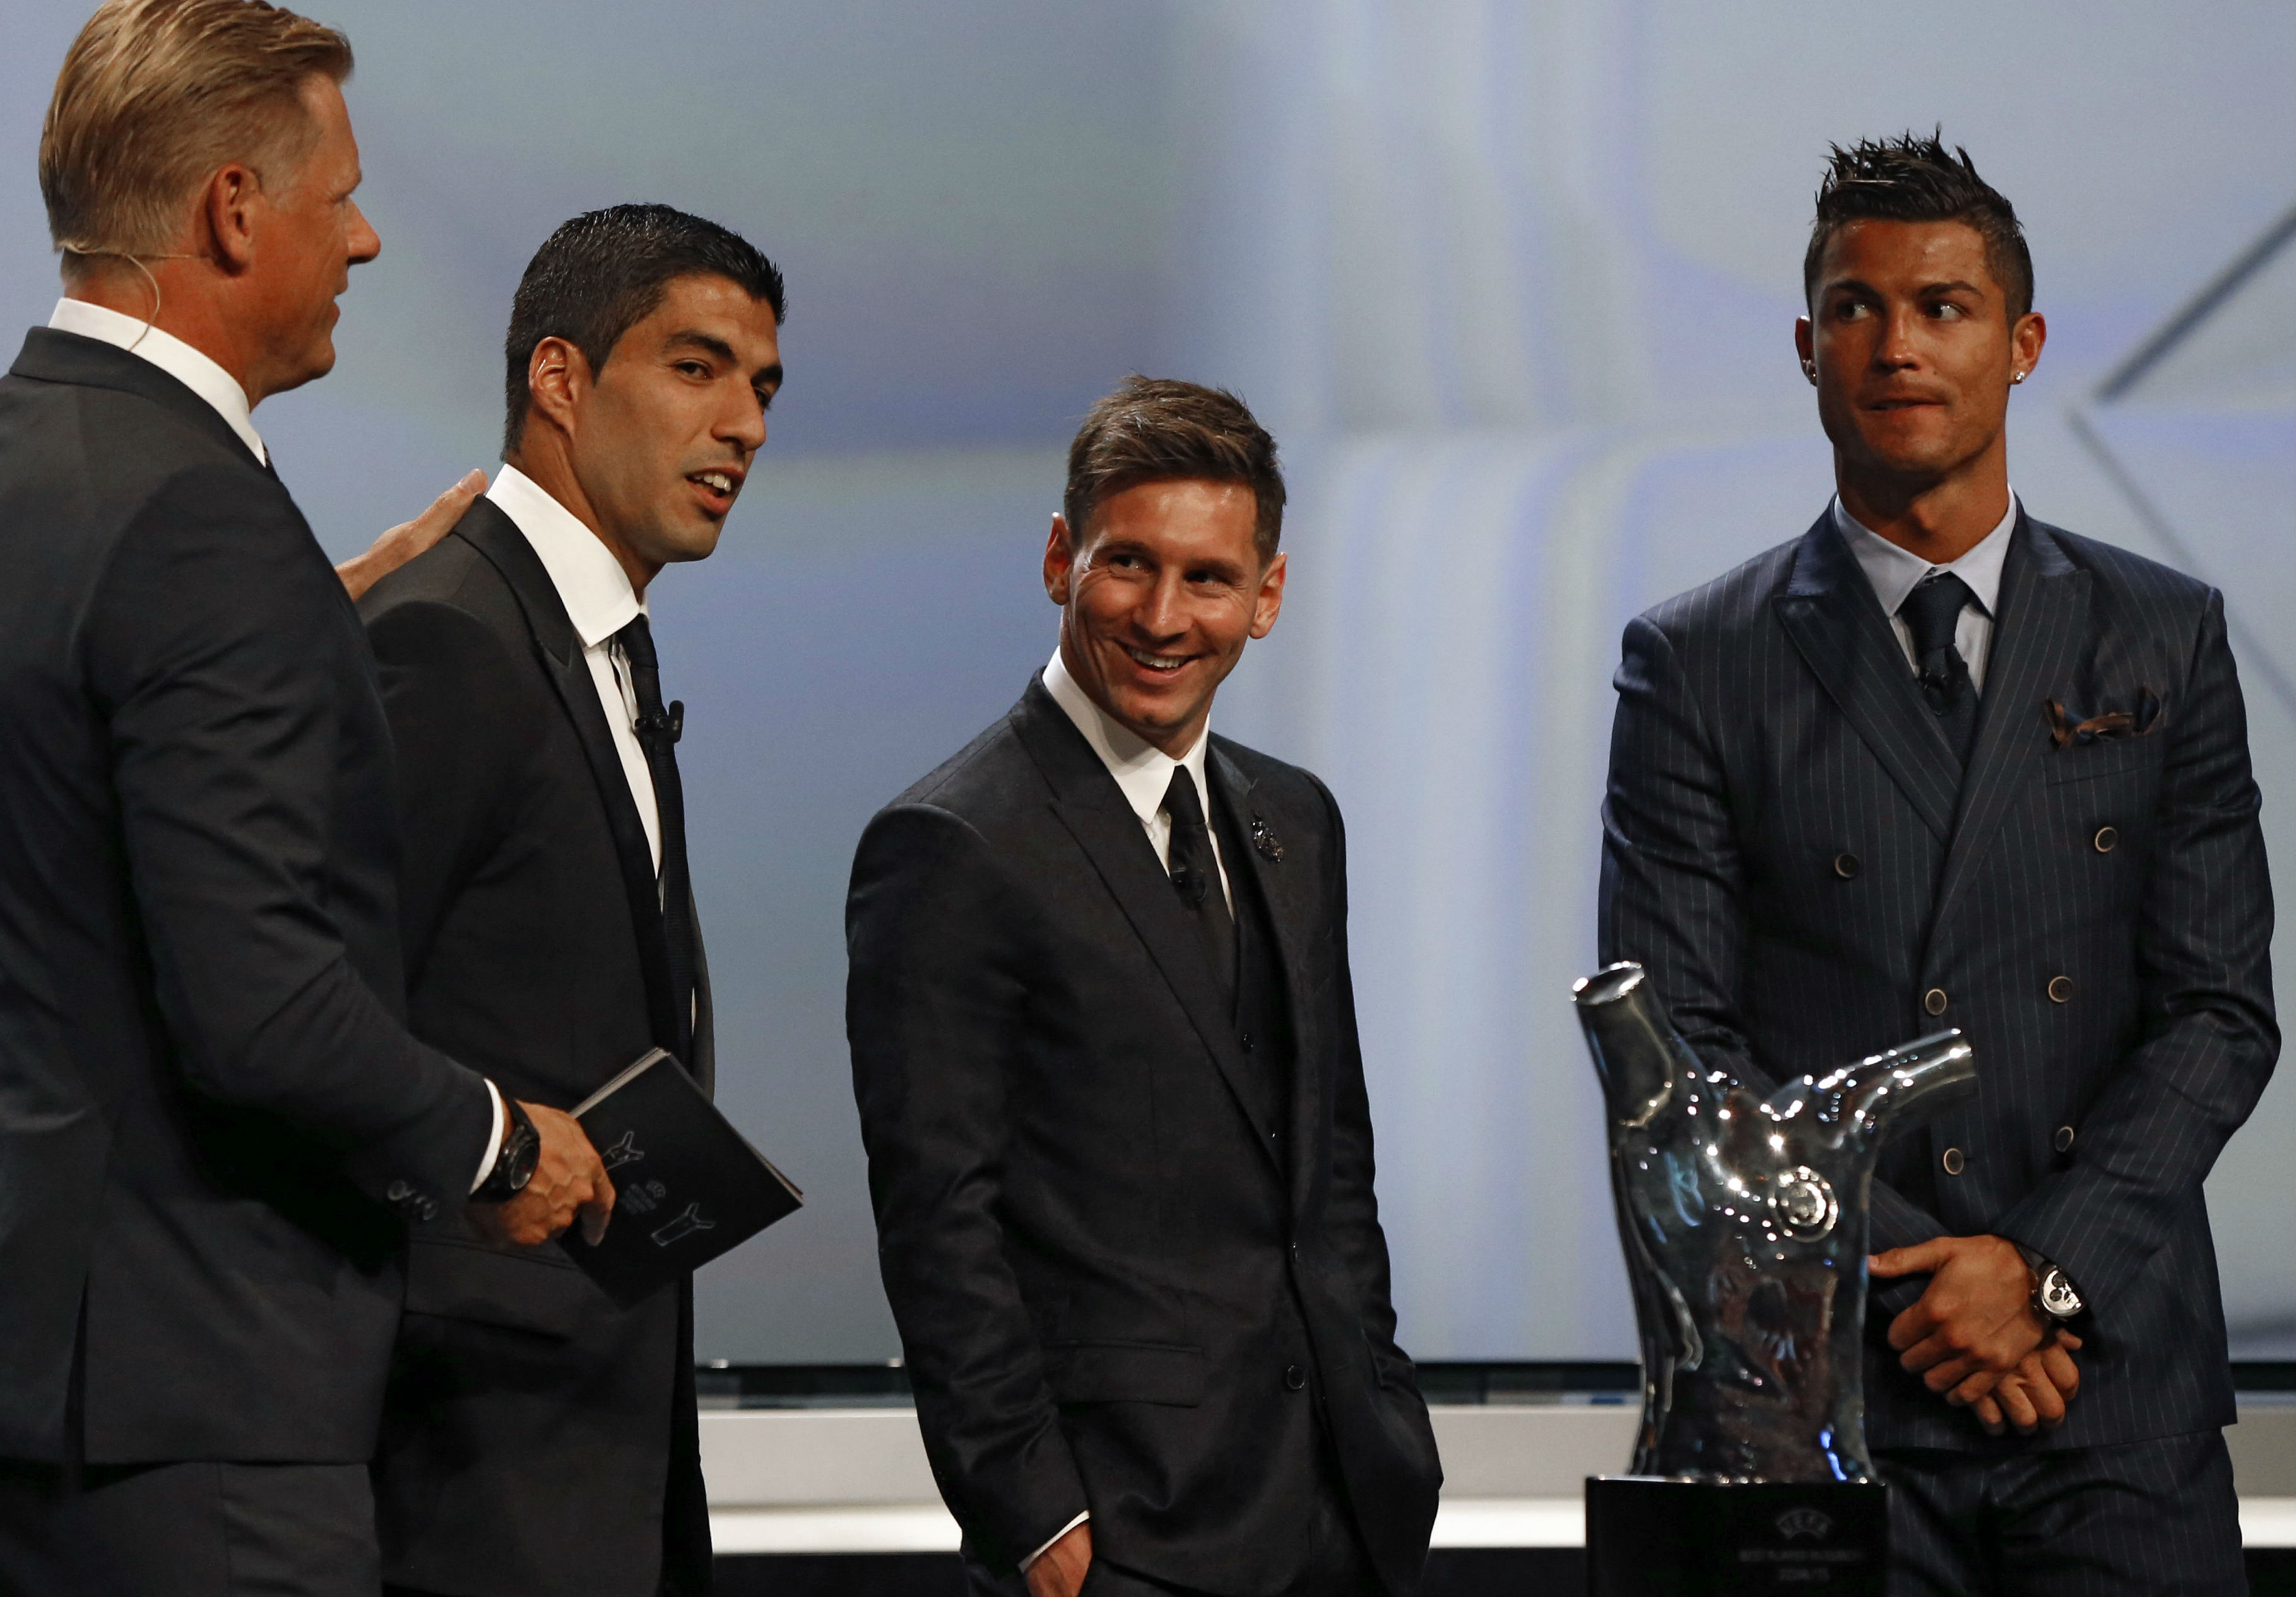 uis suarez lionel messi cristiano ronaldo - uefa player of the year - 27082015